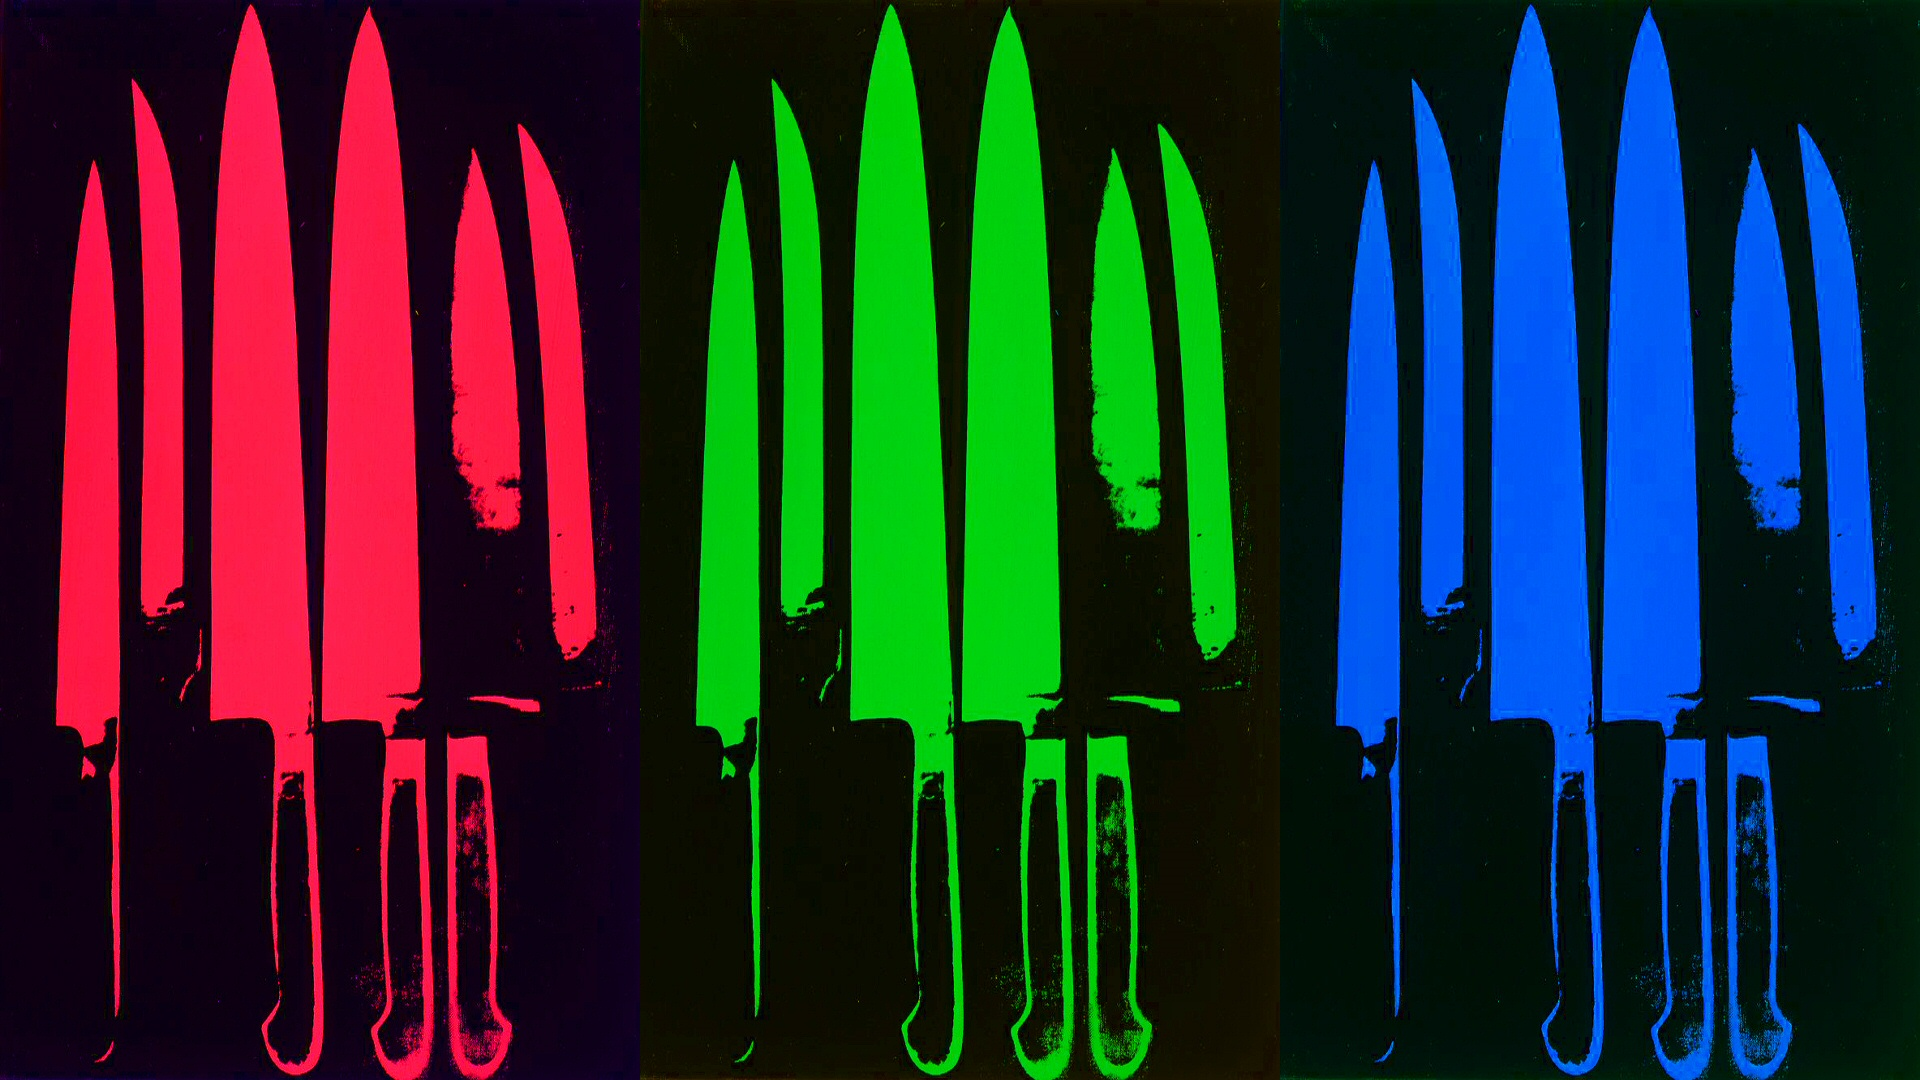 Andy Warhol Poster Andy Warhol Art Print Wallpaper Pictures 1920x1080